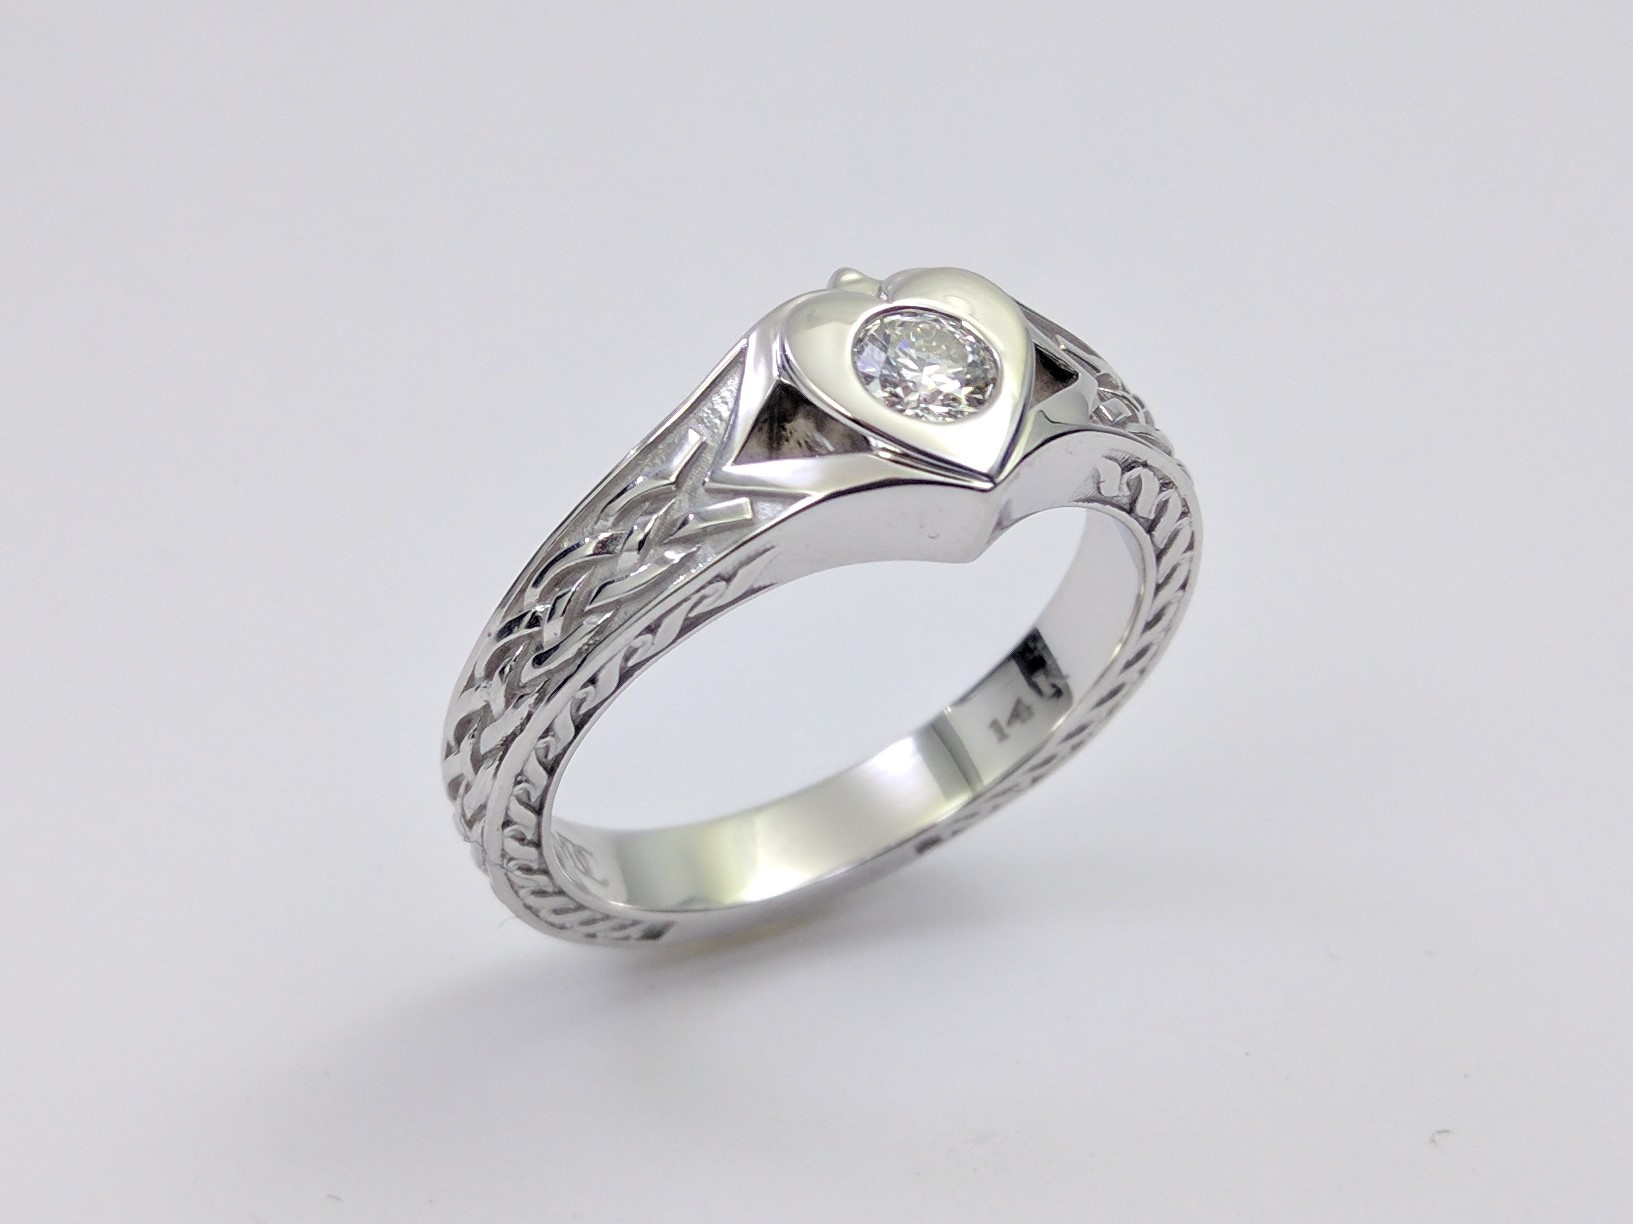 group from eriskay elegant gaelic scotland copy wedding rings celtic